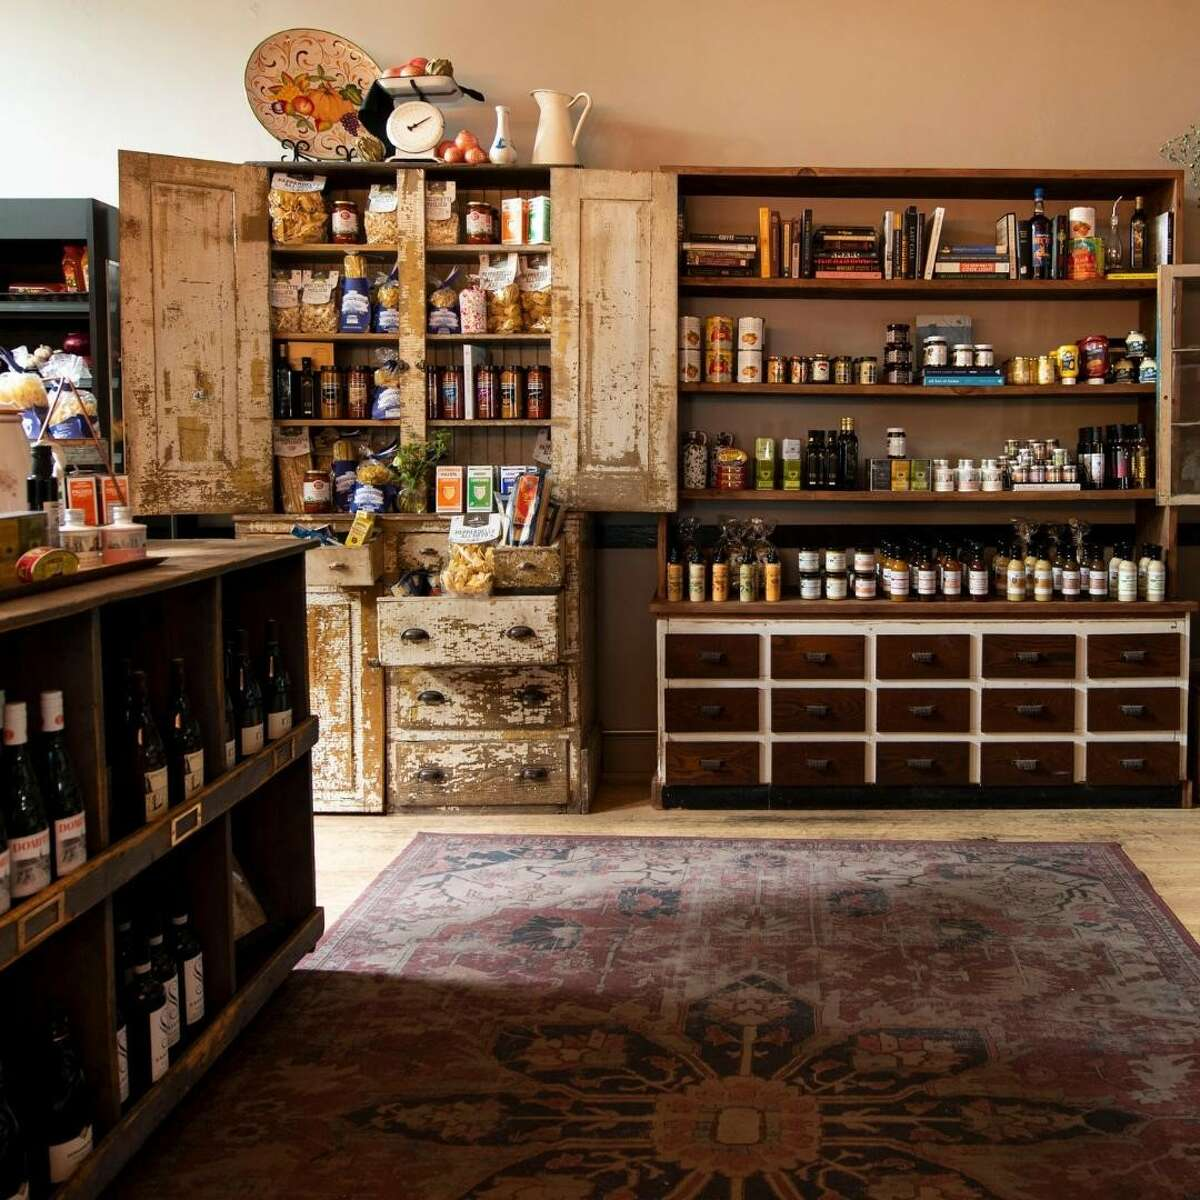 Along with offering its full restaurant menu, The Amsterdam in Rhinebeck also pivoted to offering grocery items and ready-to-heat foods. The investment in the necessary refrigeration equipment and shelving has paid off.